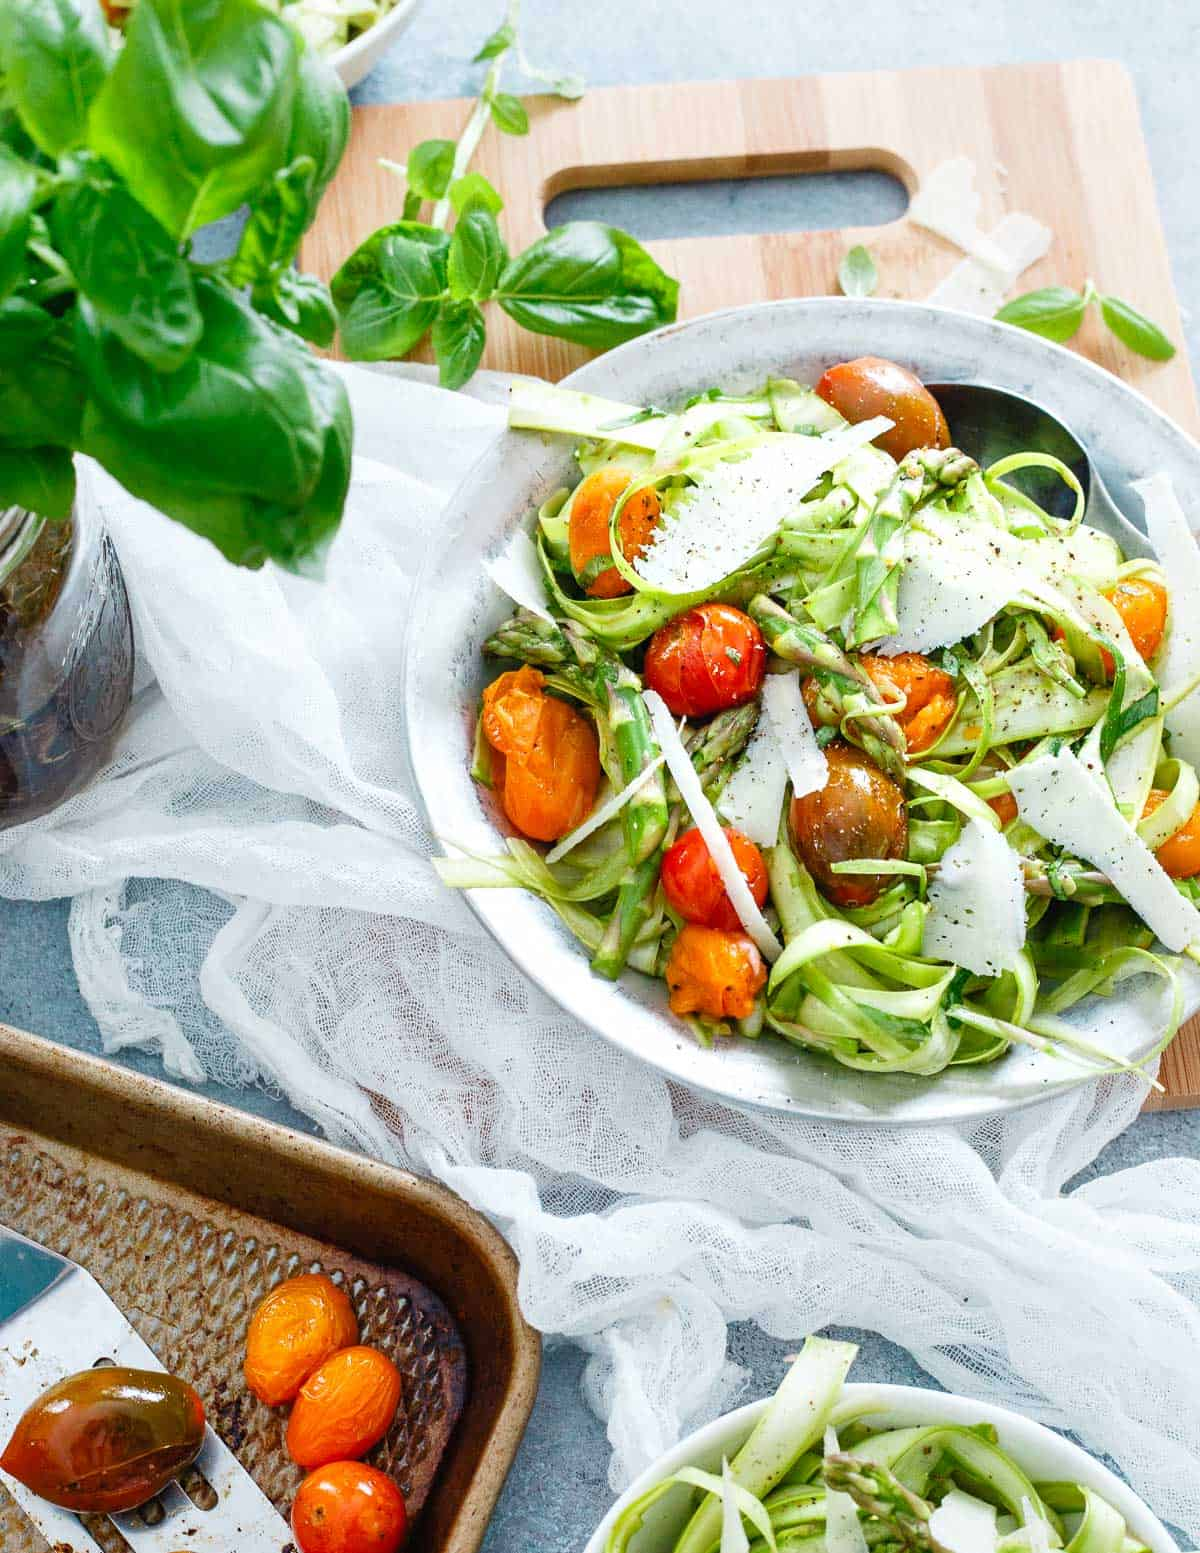 Thinly shaved asparagus makes a delicious spring salad when combined with roasted tomatoes, basil and lots of bright lemon!